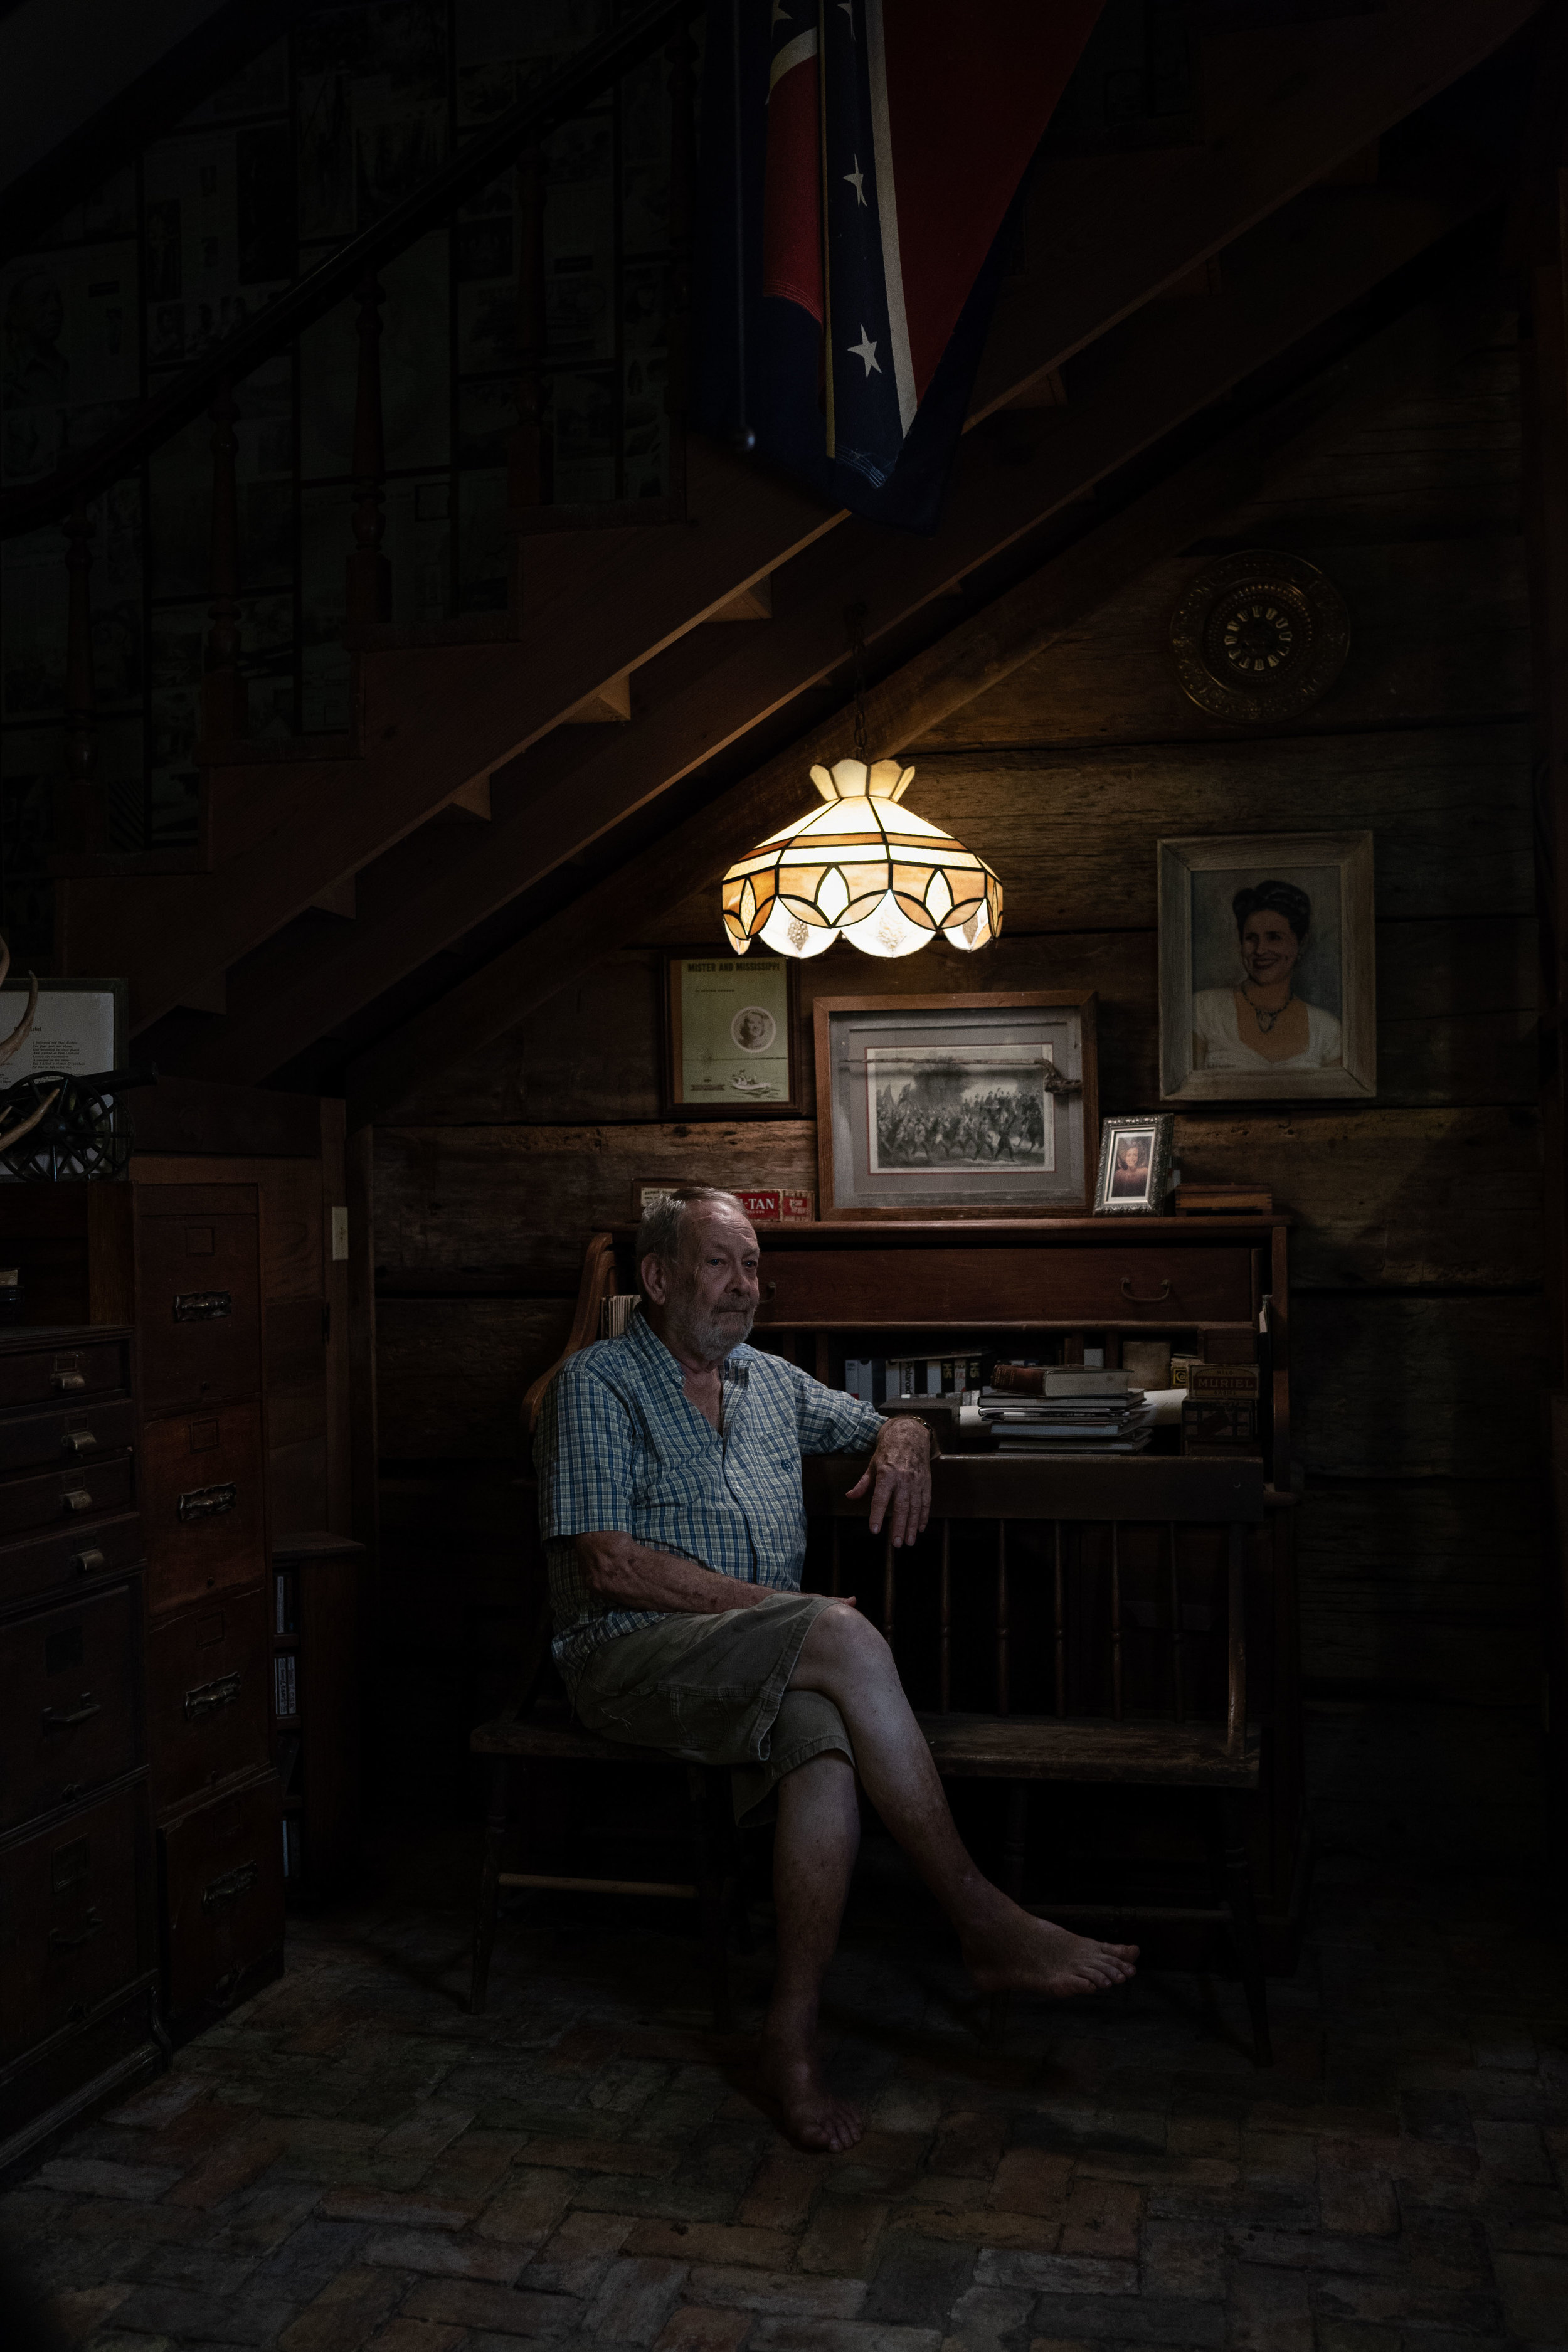 Gordon Cotton, a retired journalist fervently opposed to the removal of Confederate monuments, poses for a portrait at his home in Vicksburg, Mississippi.